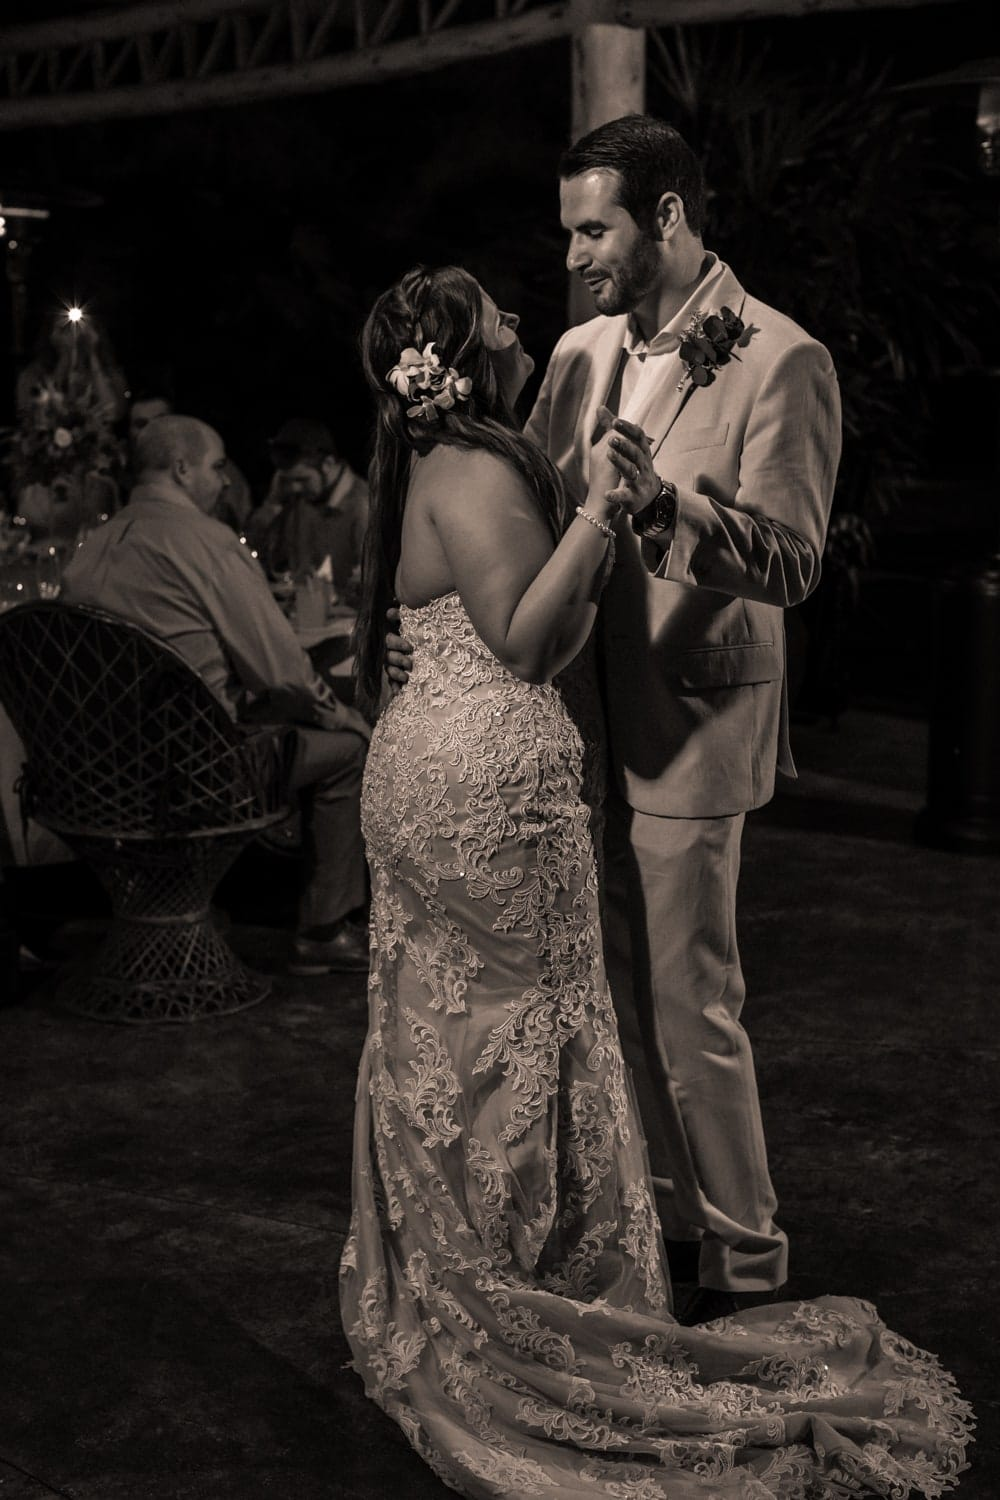 Black and white photo of groom during first dance.